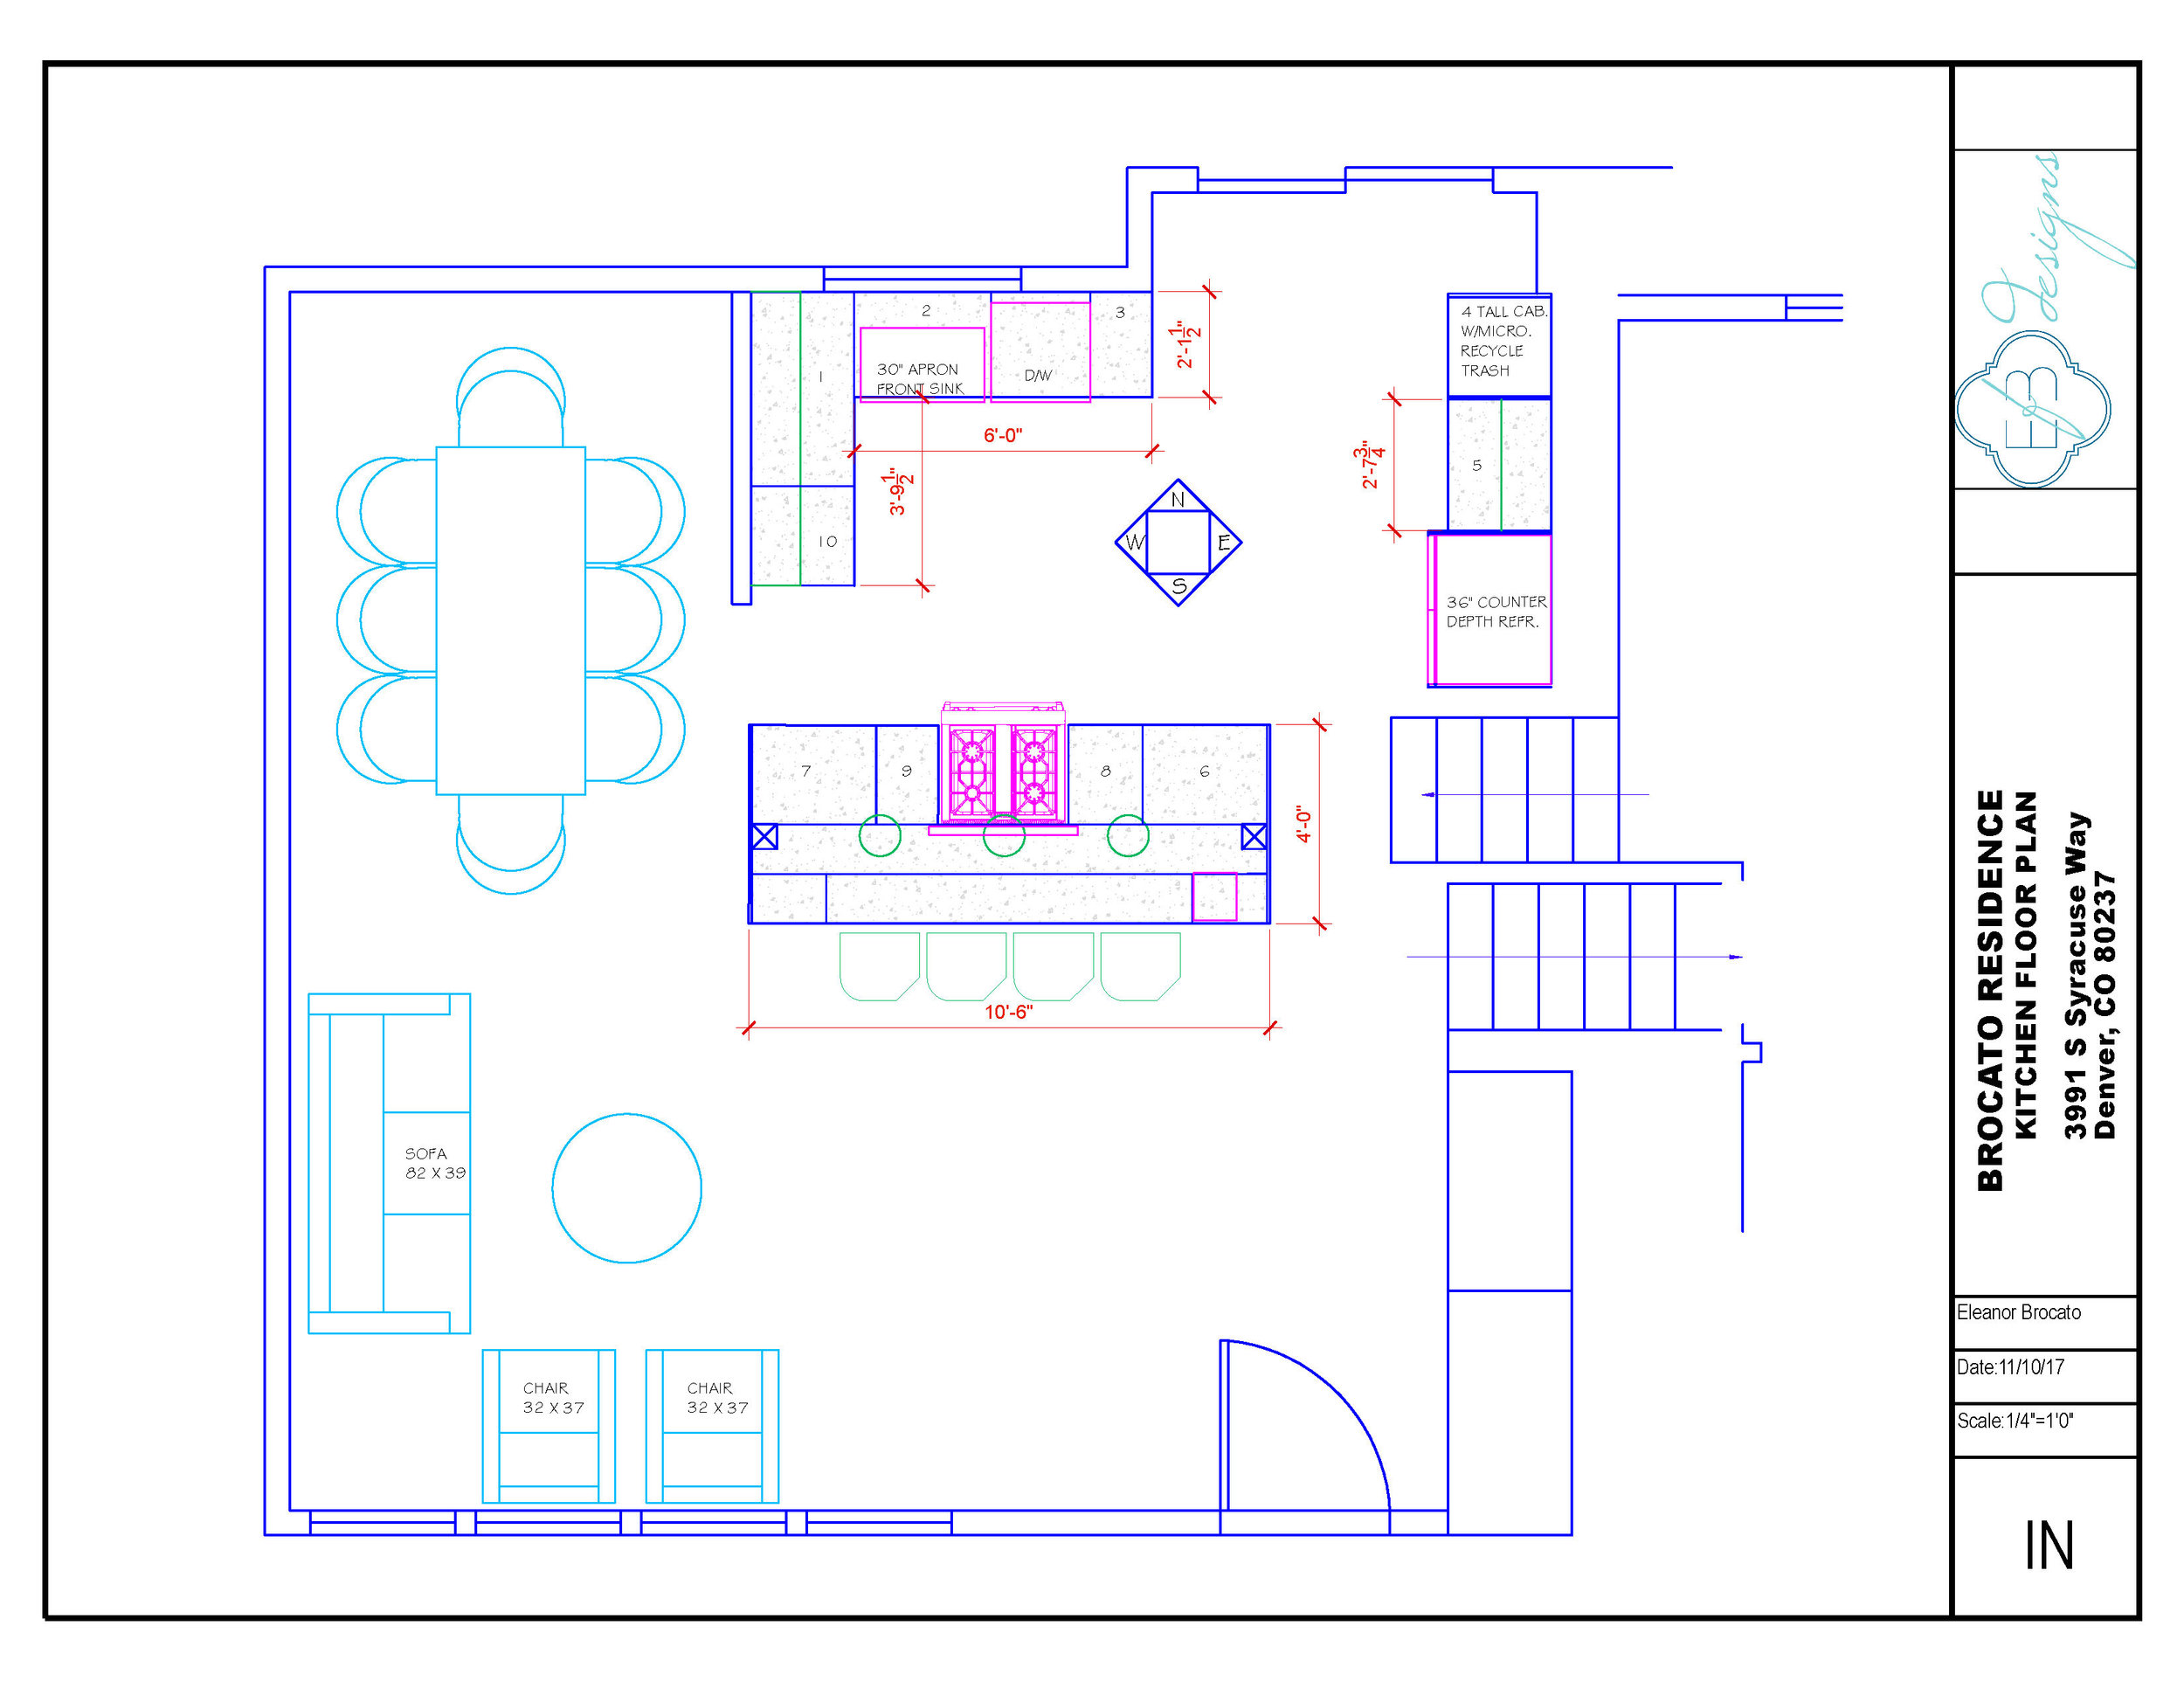 Brocato Kitchen Floor Plan_11-10-17.jpg